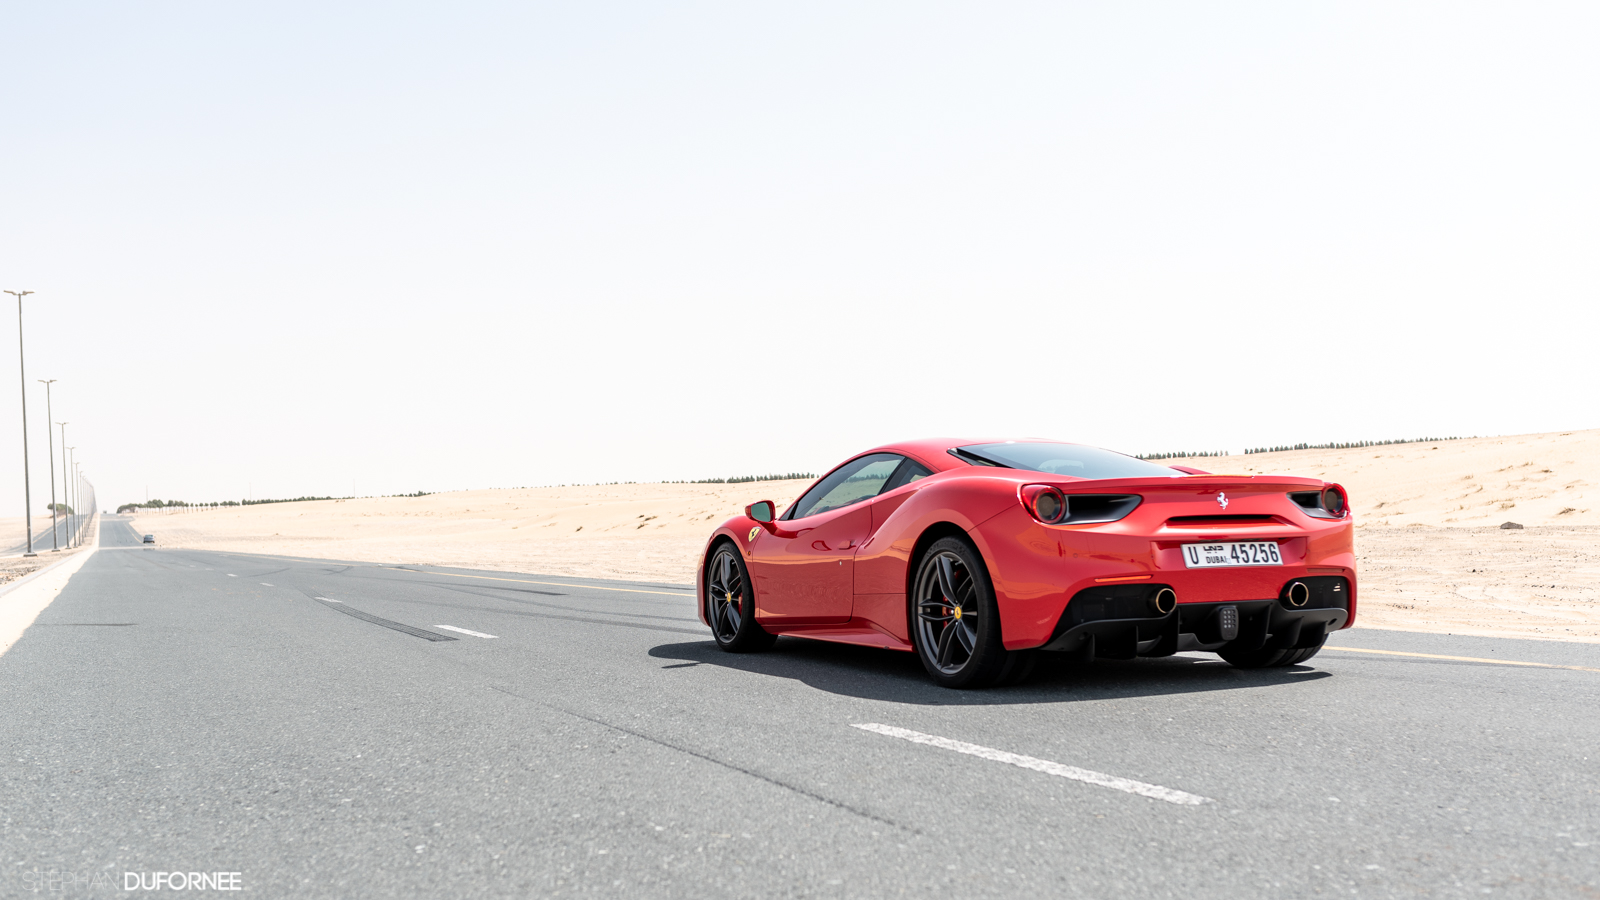 Special: cruising through Dubai in a Ferrari 488 GTB